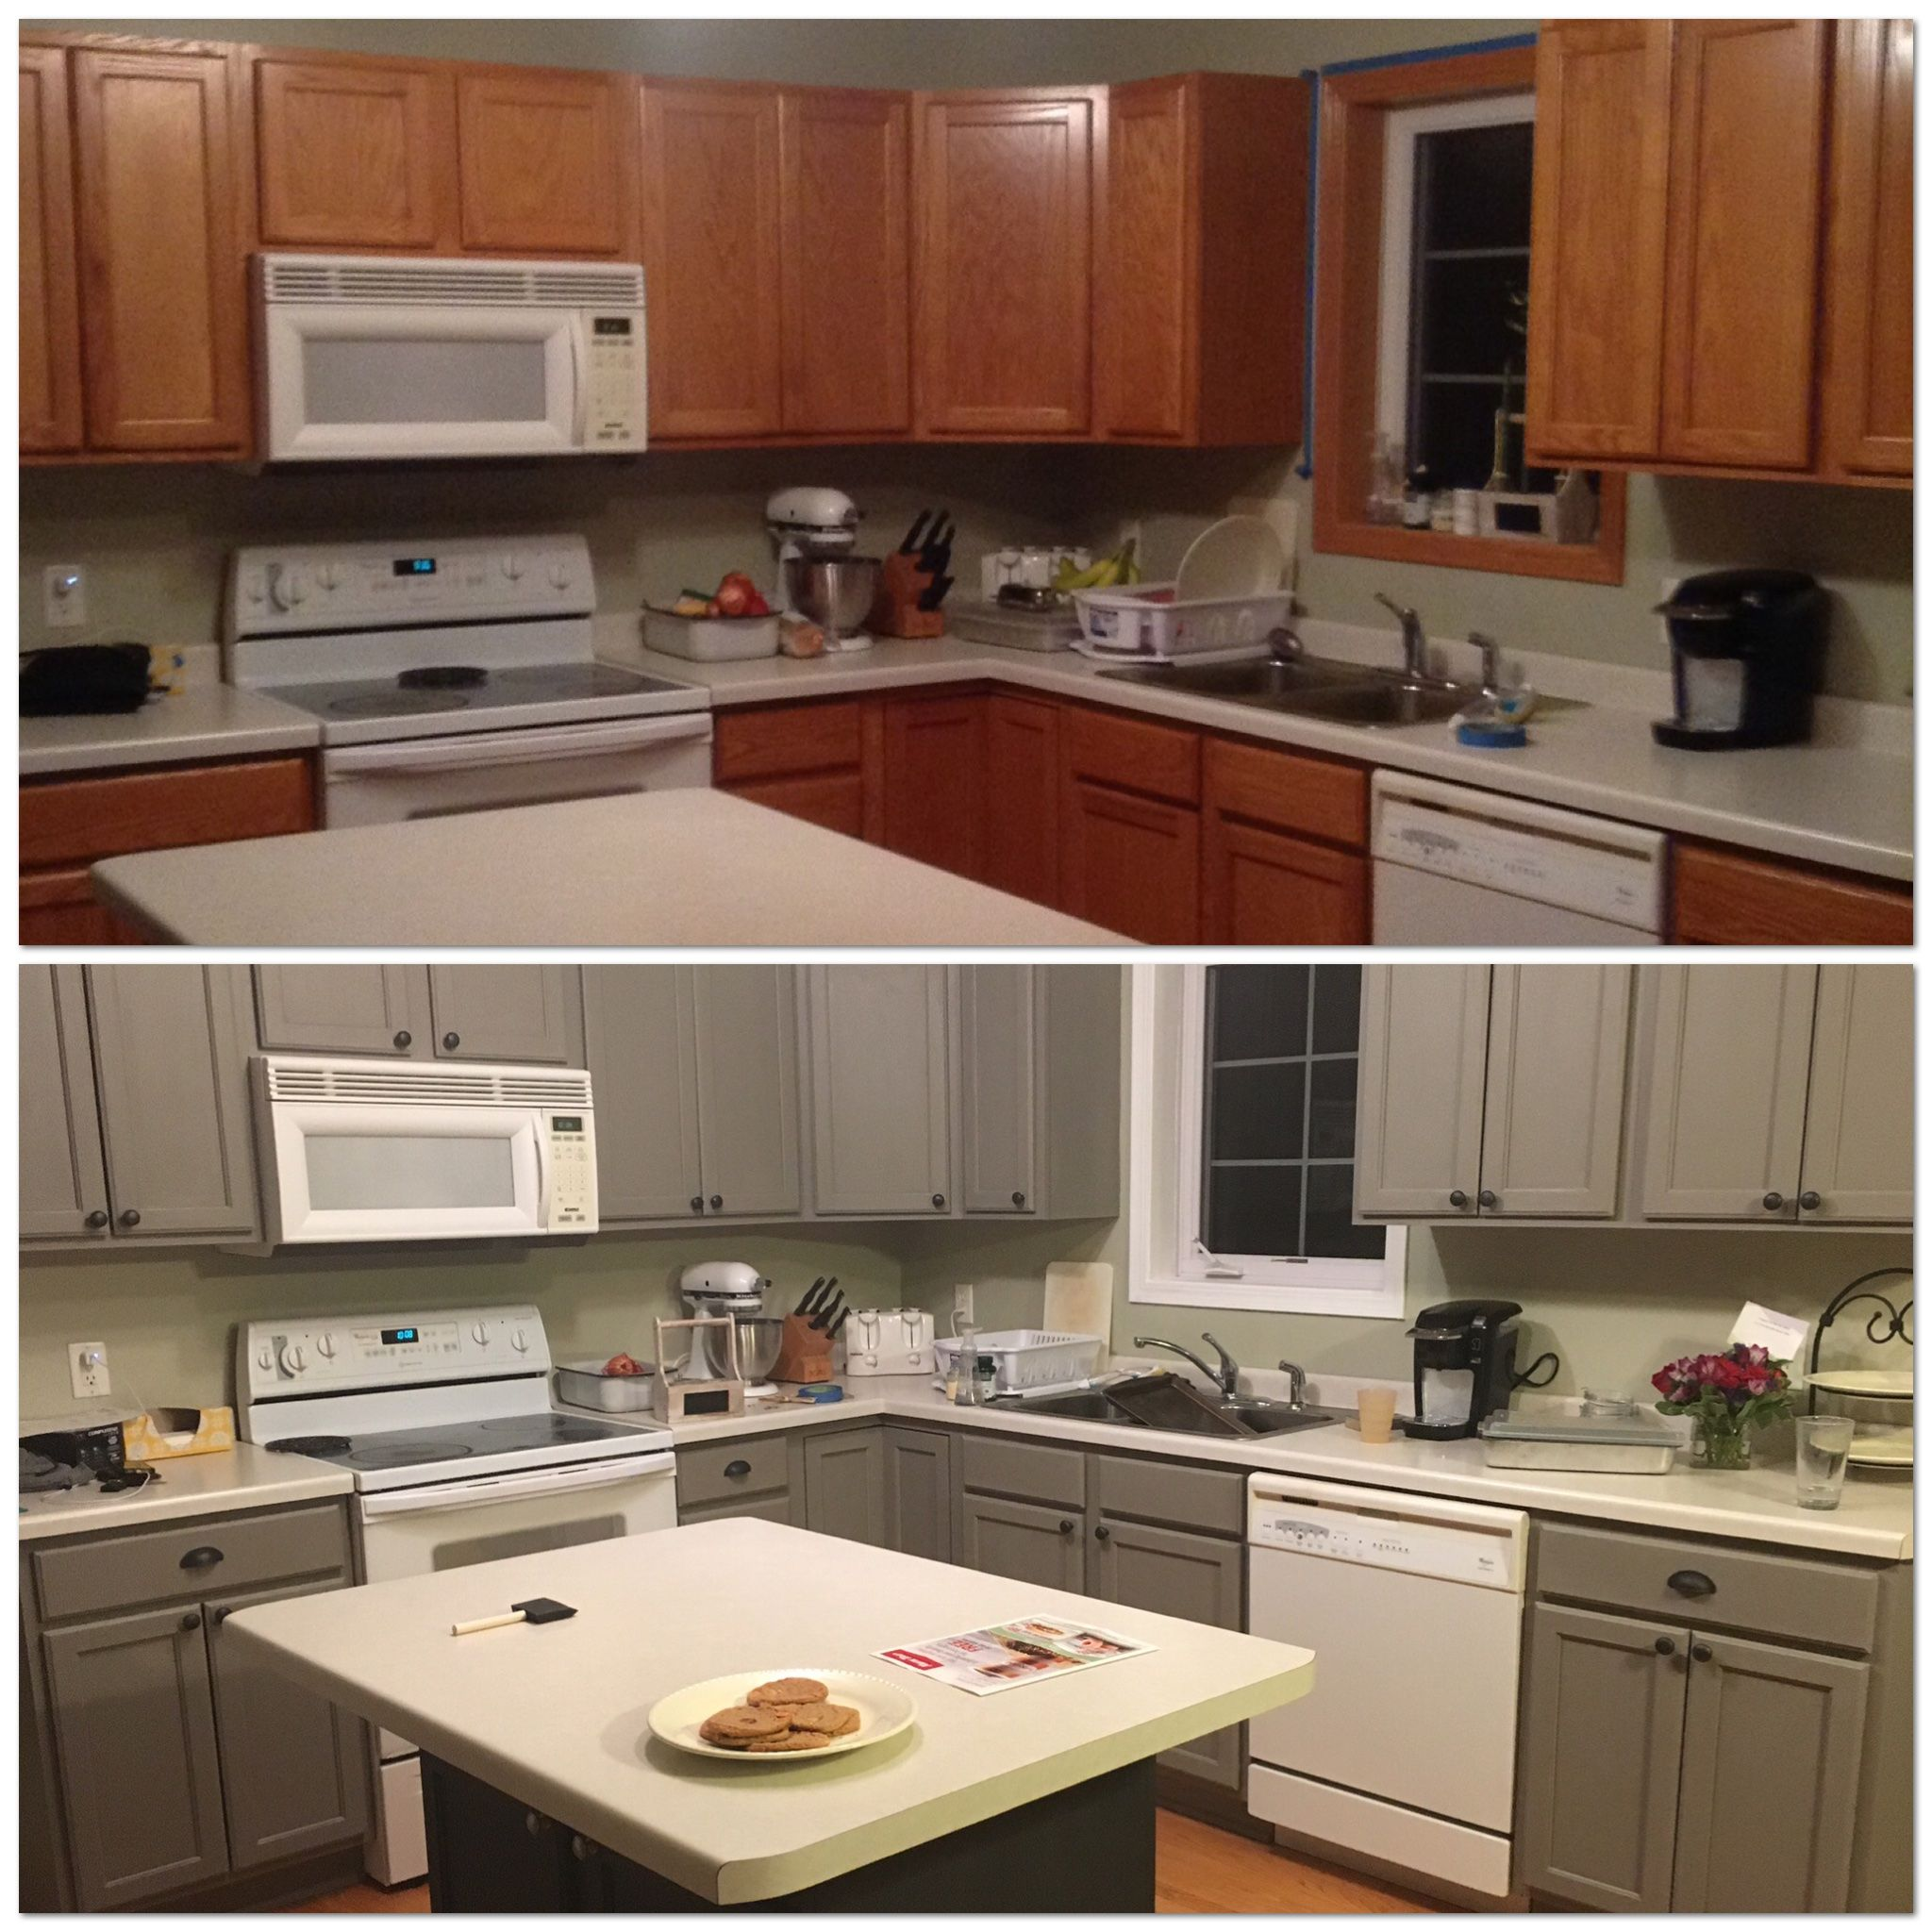 Before And After Painting My Kitchen Cupboards With Annie Kitchen Cabinets Before And After Painting Kitchen Cabinets Kitchen Cabinets Painted Before And After